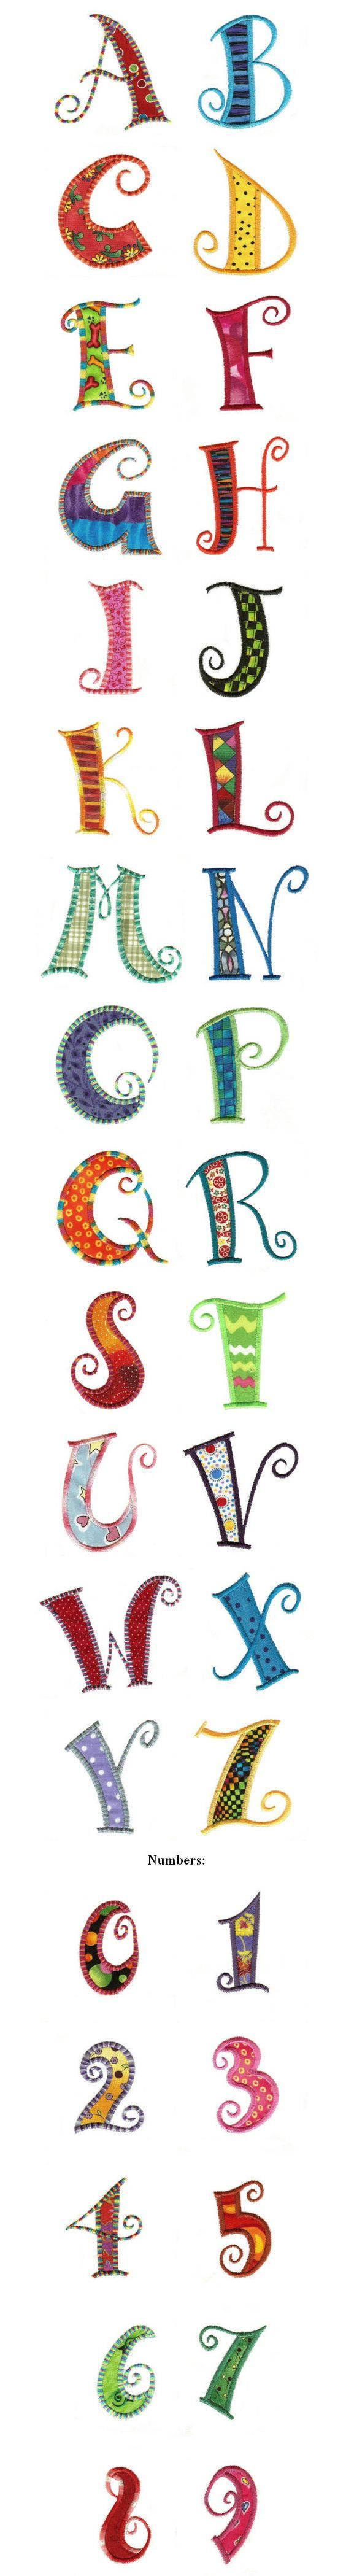 Embroidery | Free Machine Embroidery Designs| Curly Q Applique Alphabet: